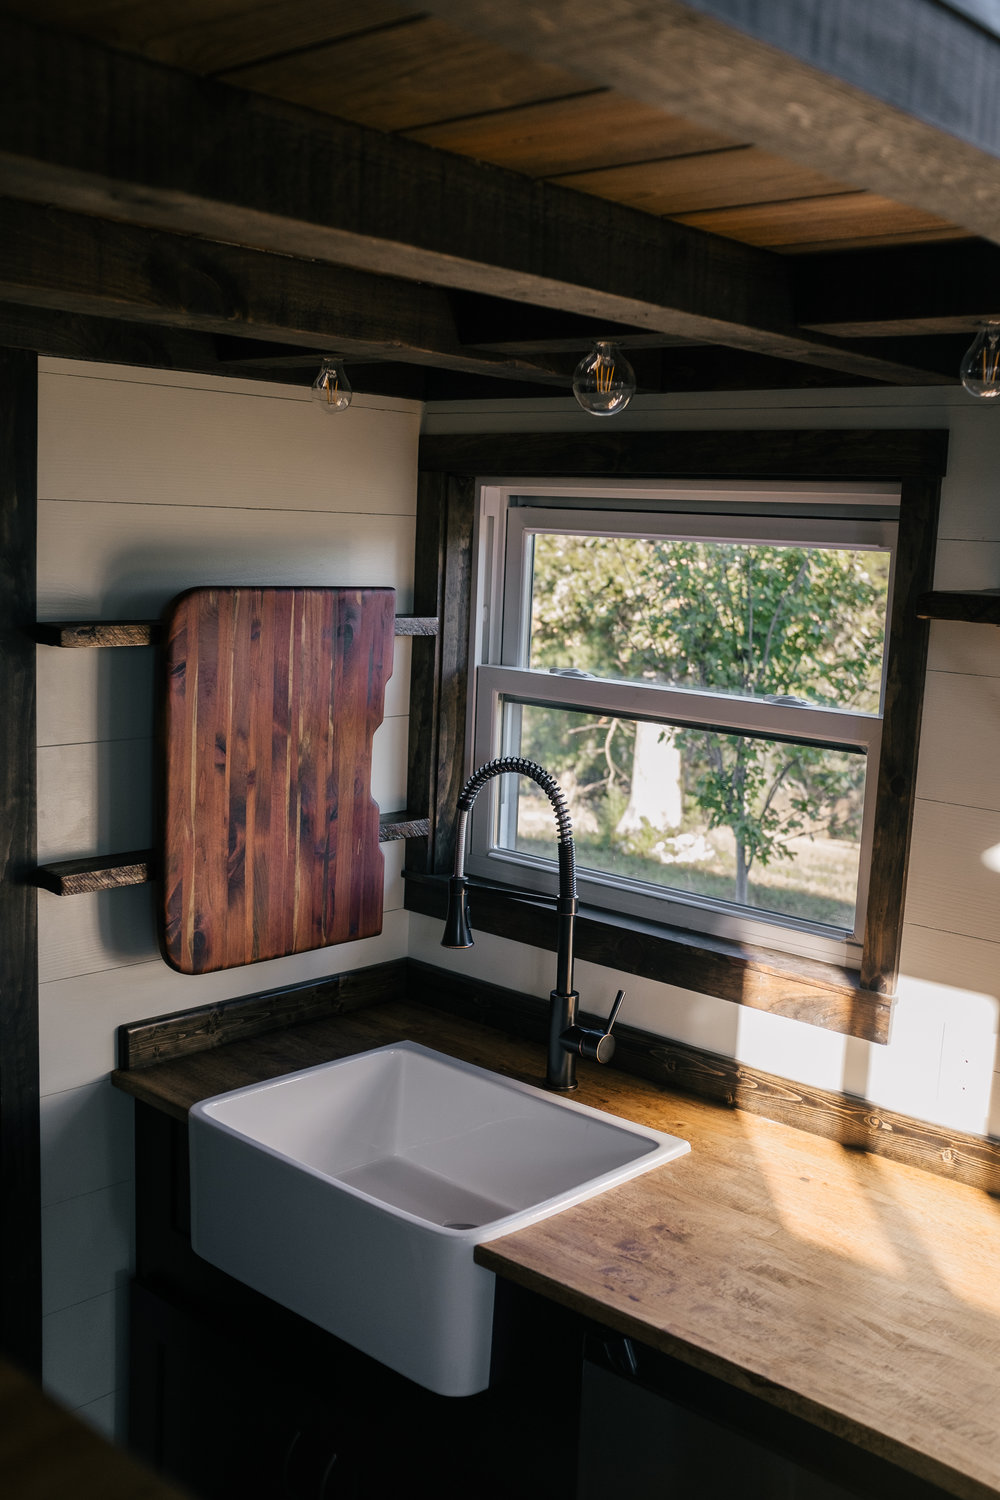 The Silhouette by Wind River Tiny Homes - shaker style cabinets, open kitchen shelving, under cabinet fridge, farmhouse sink, butcher block, cedar sink cutting board